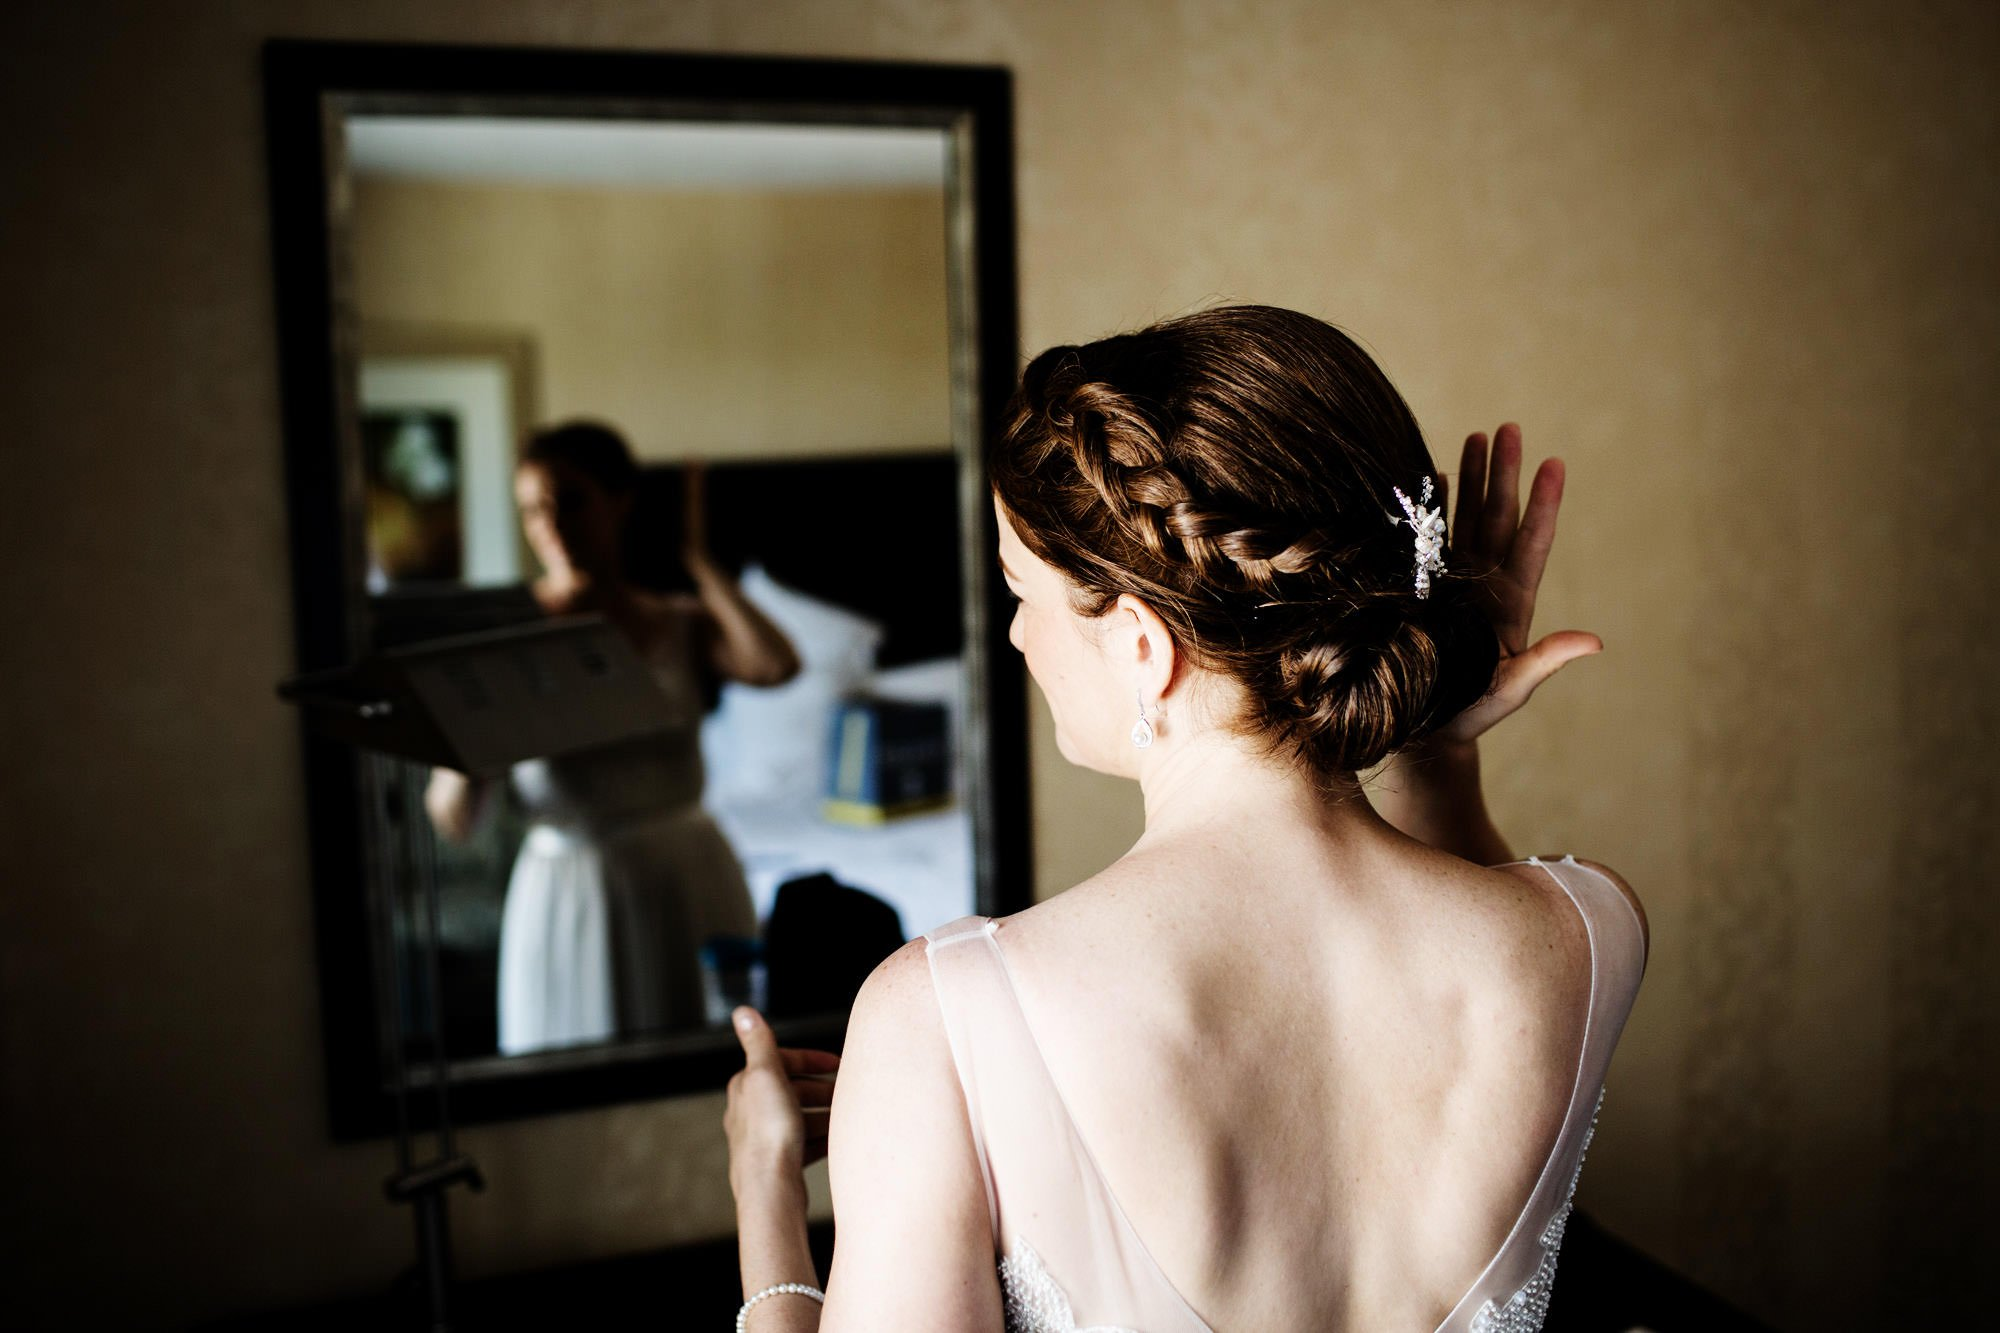 The bride fixes her hair in the mirror.